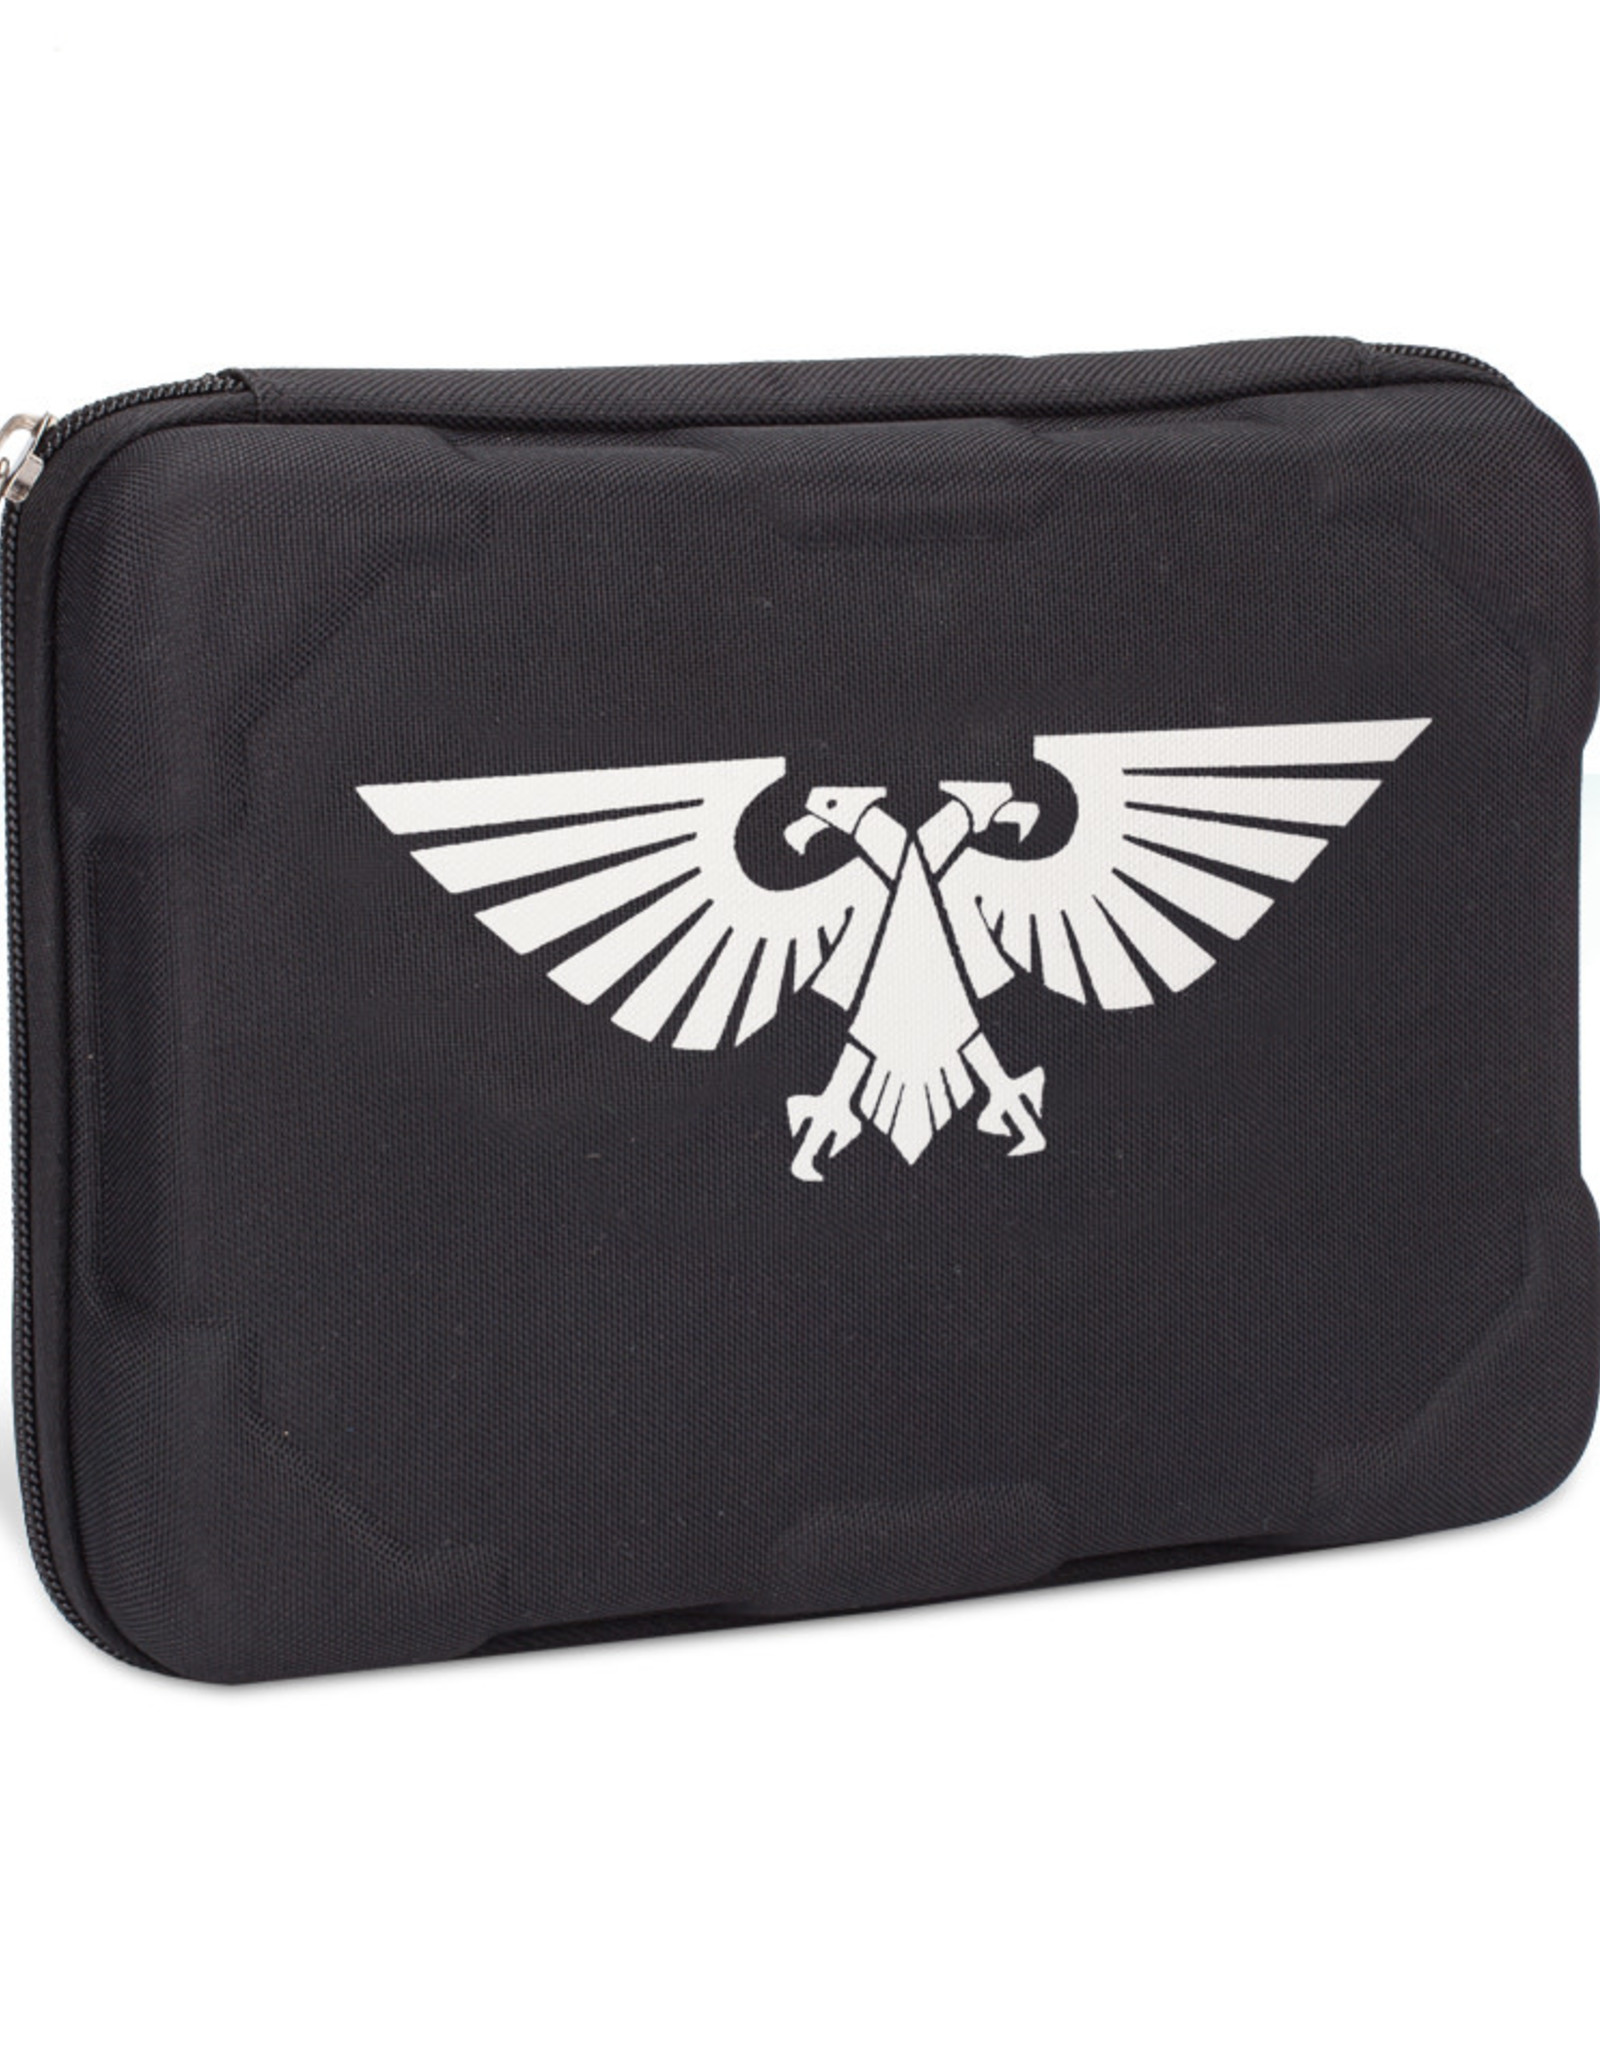 Warhammer 40K Warhammer 40K Carry Case